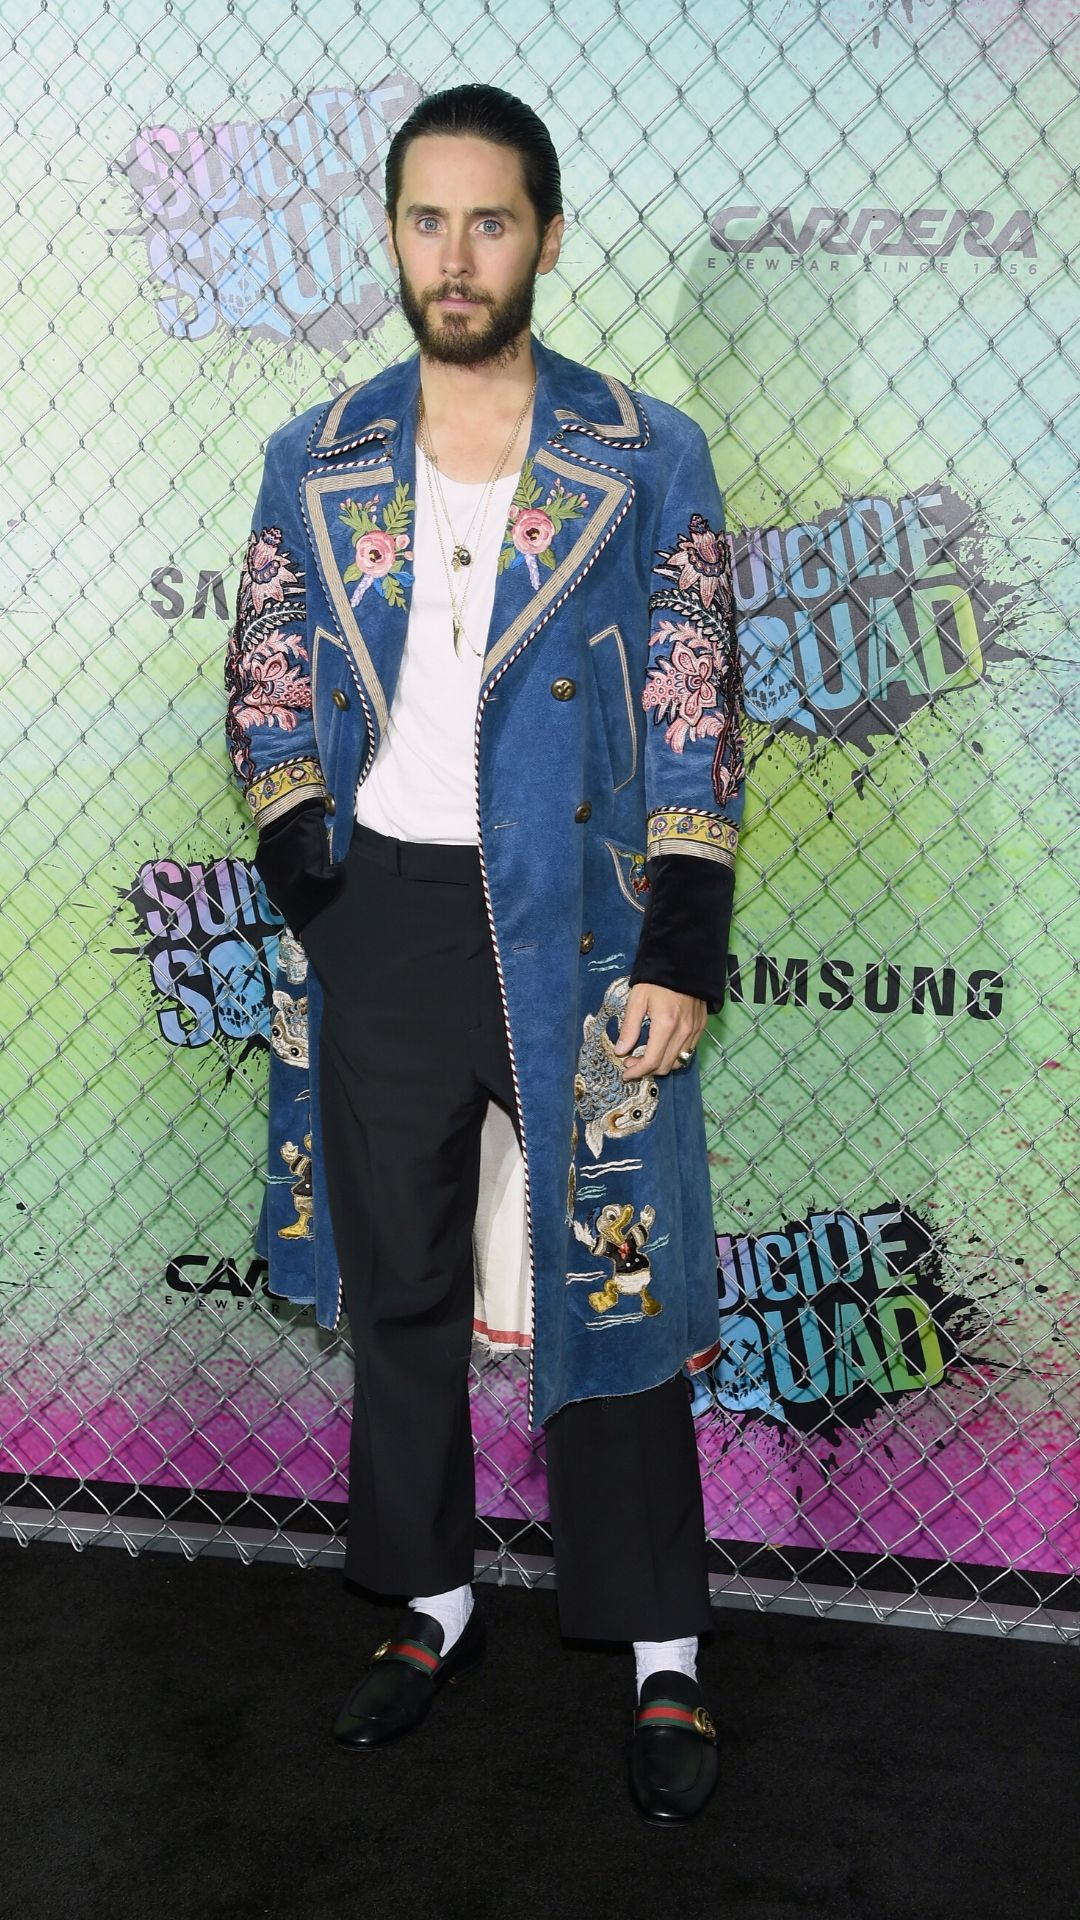 JARED LETO, MENSWEAR, FASHION, STYLE, STYLE ICON, ESQUIRE, 2020